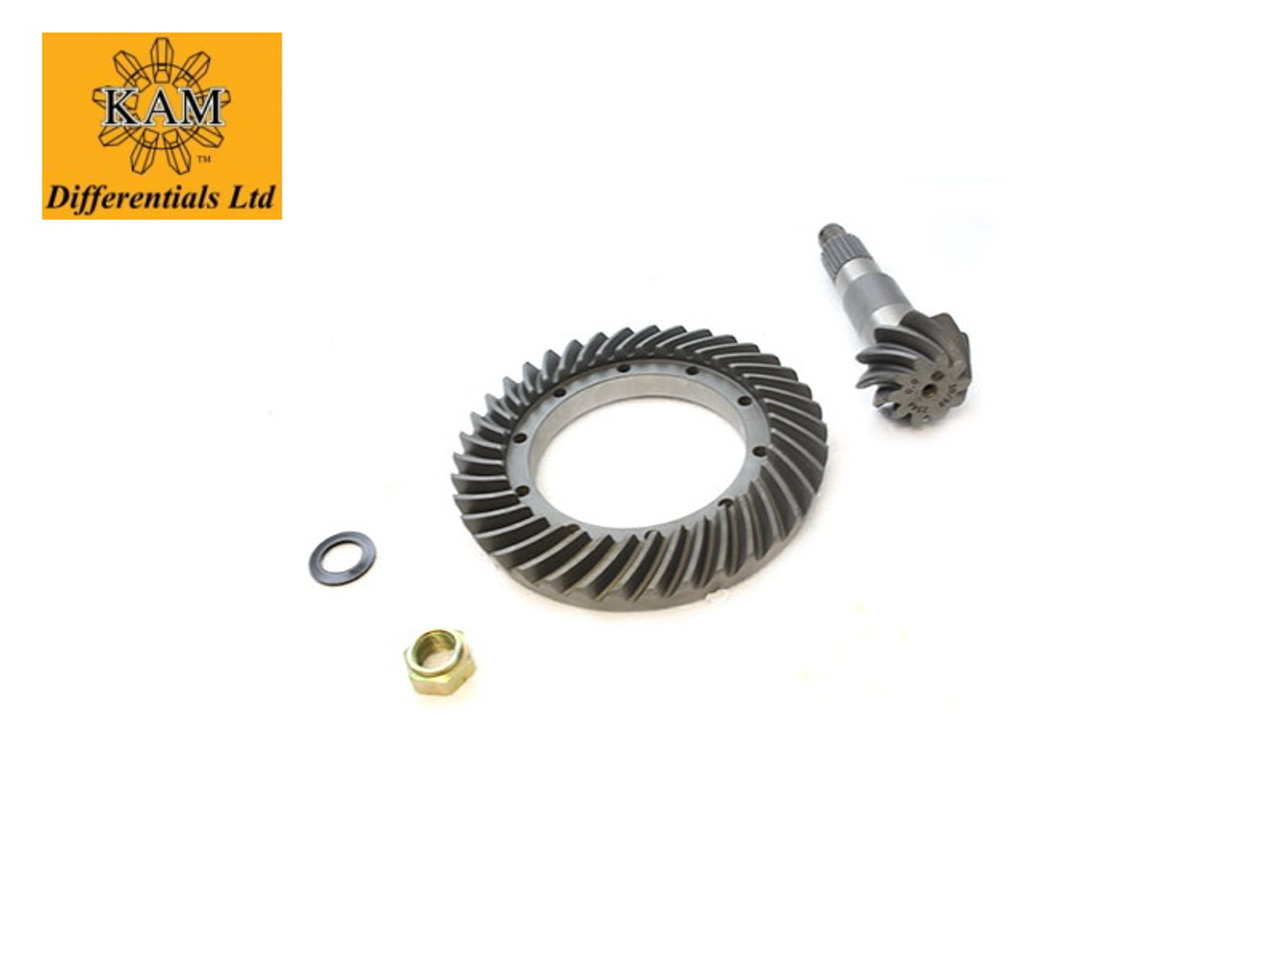 KAM 3.8 CROWN WHEEL&PINION REAR (LONG NOSE ROVER DIFF)